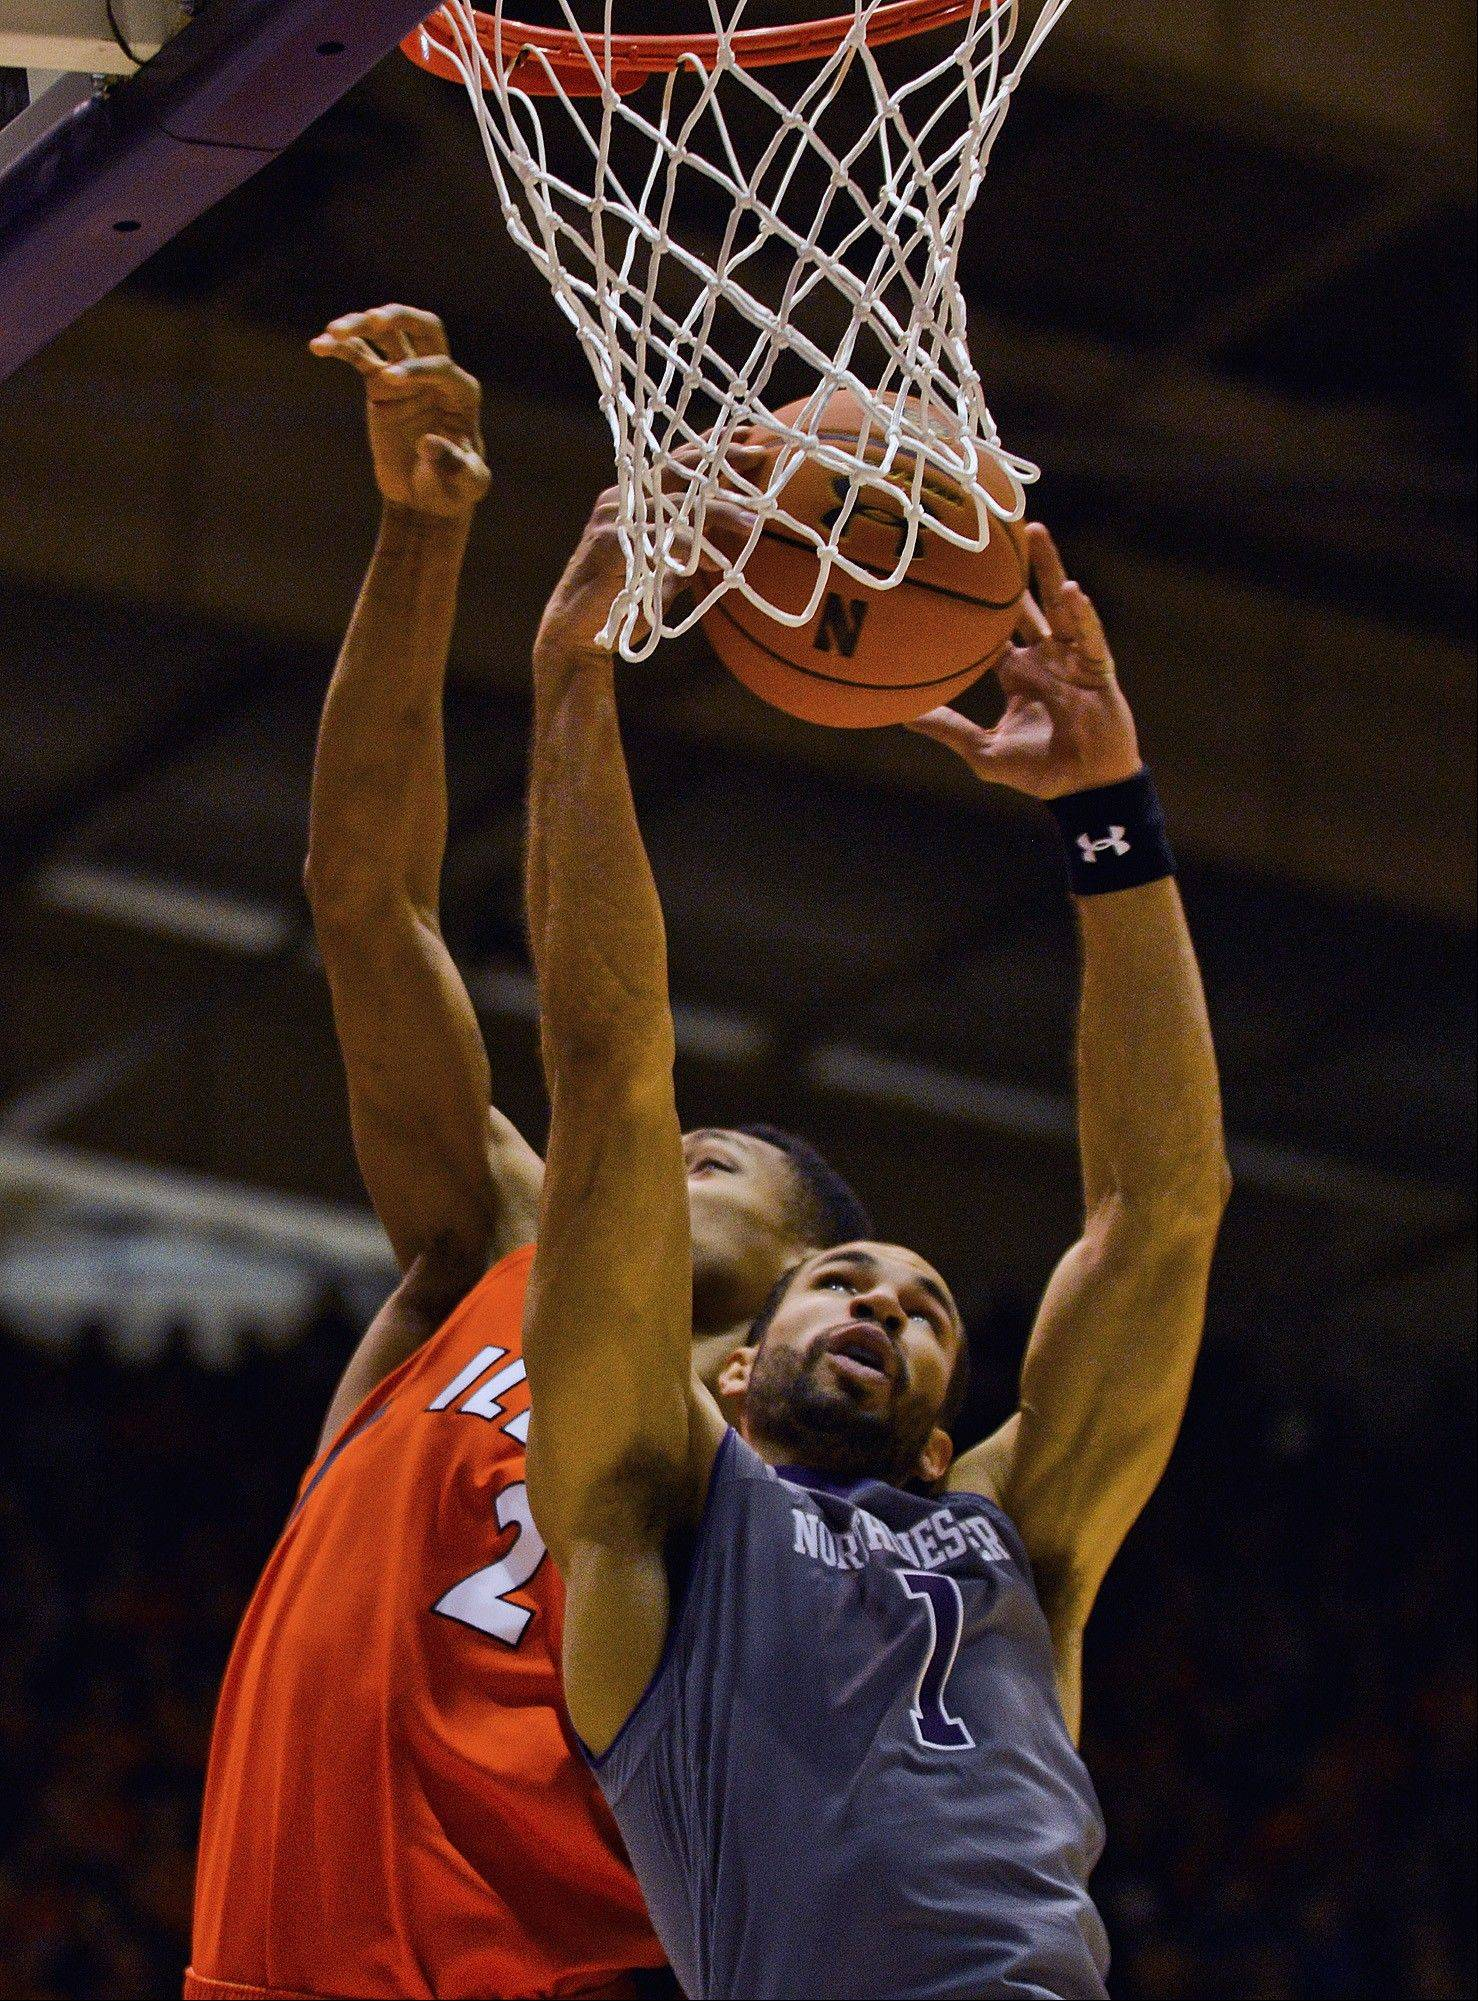 Northwestern's Drew Crawford (1) grabs a rebound from Illinois' Joseph Bertrand (2) during the first half of an NCAA college basketball game in Evanston, Ill., on Sunday, Jan. 12, 2014.